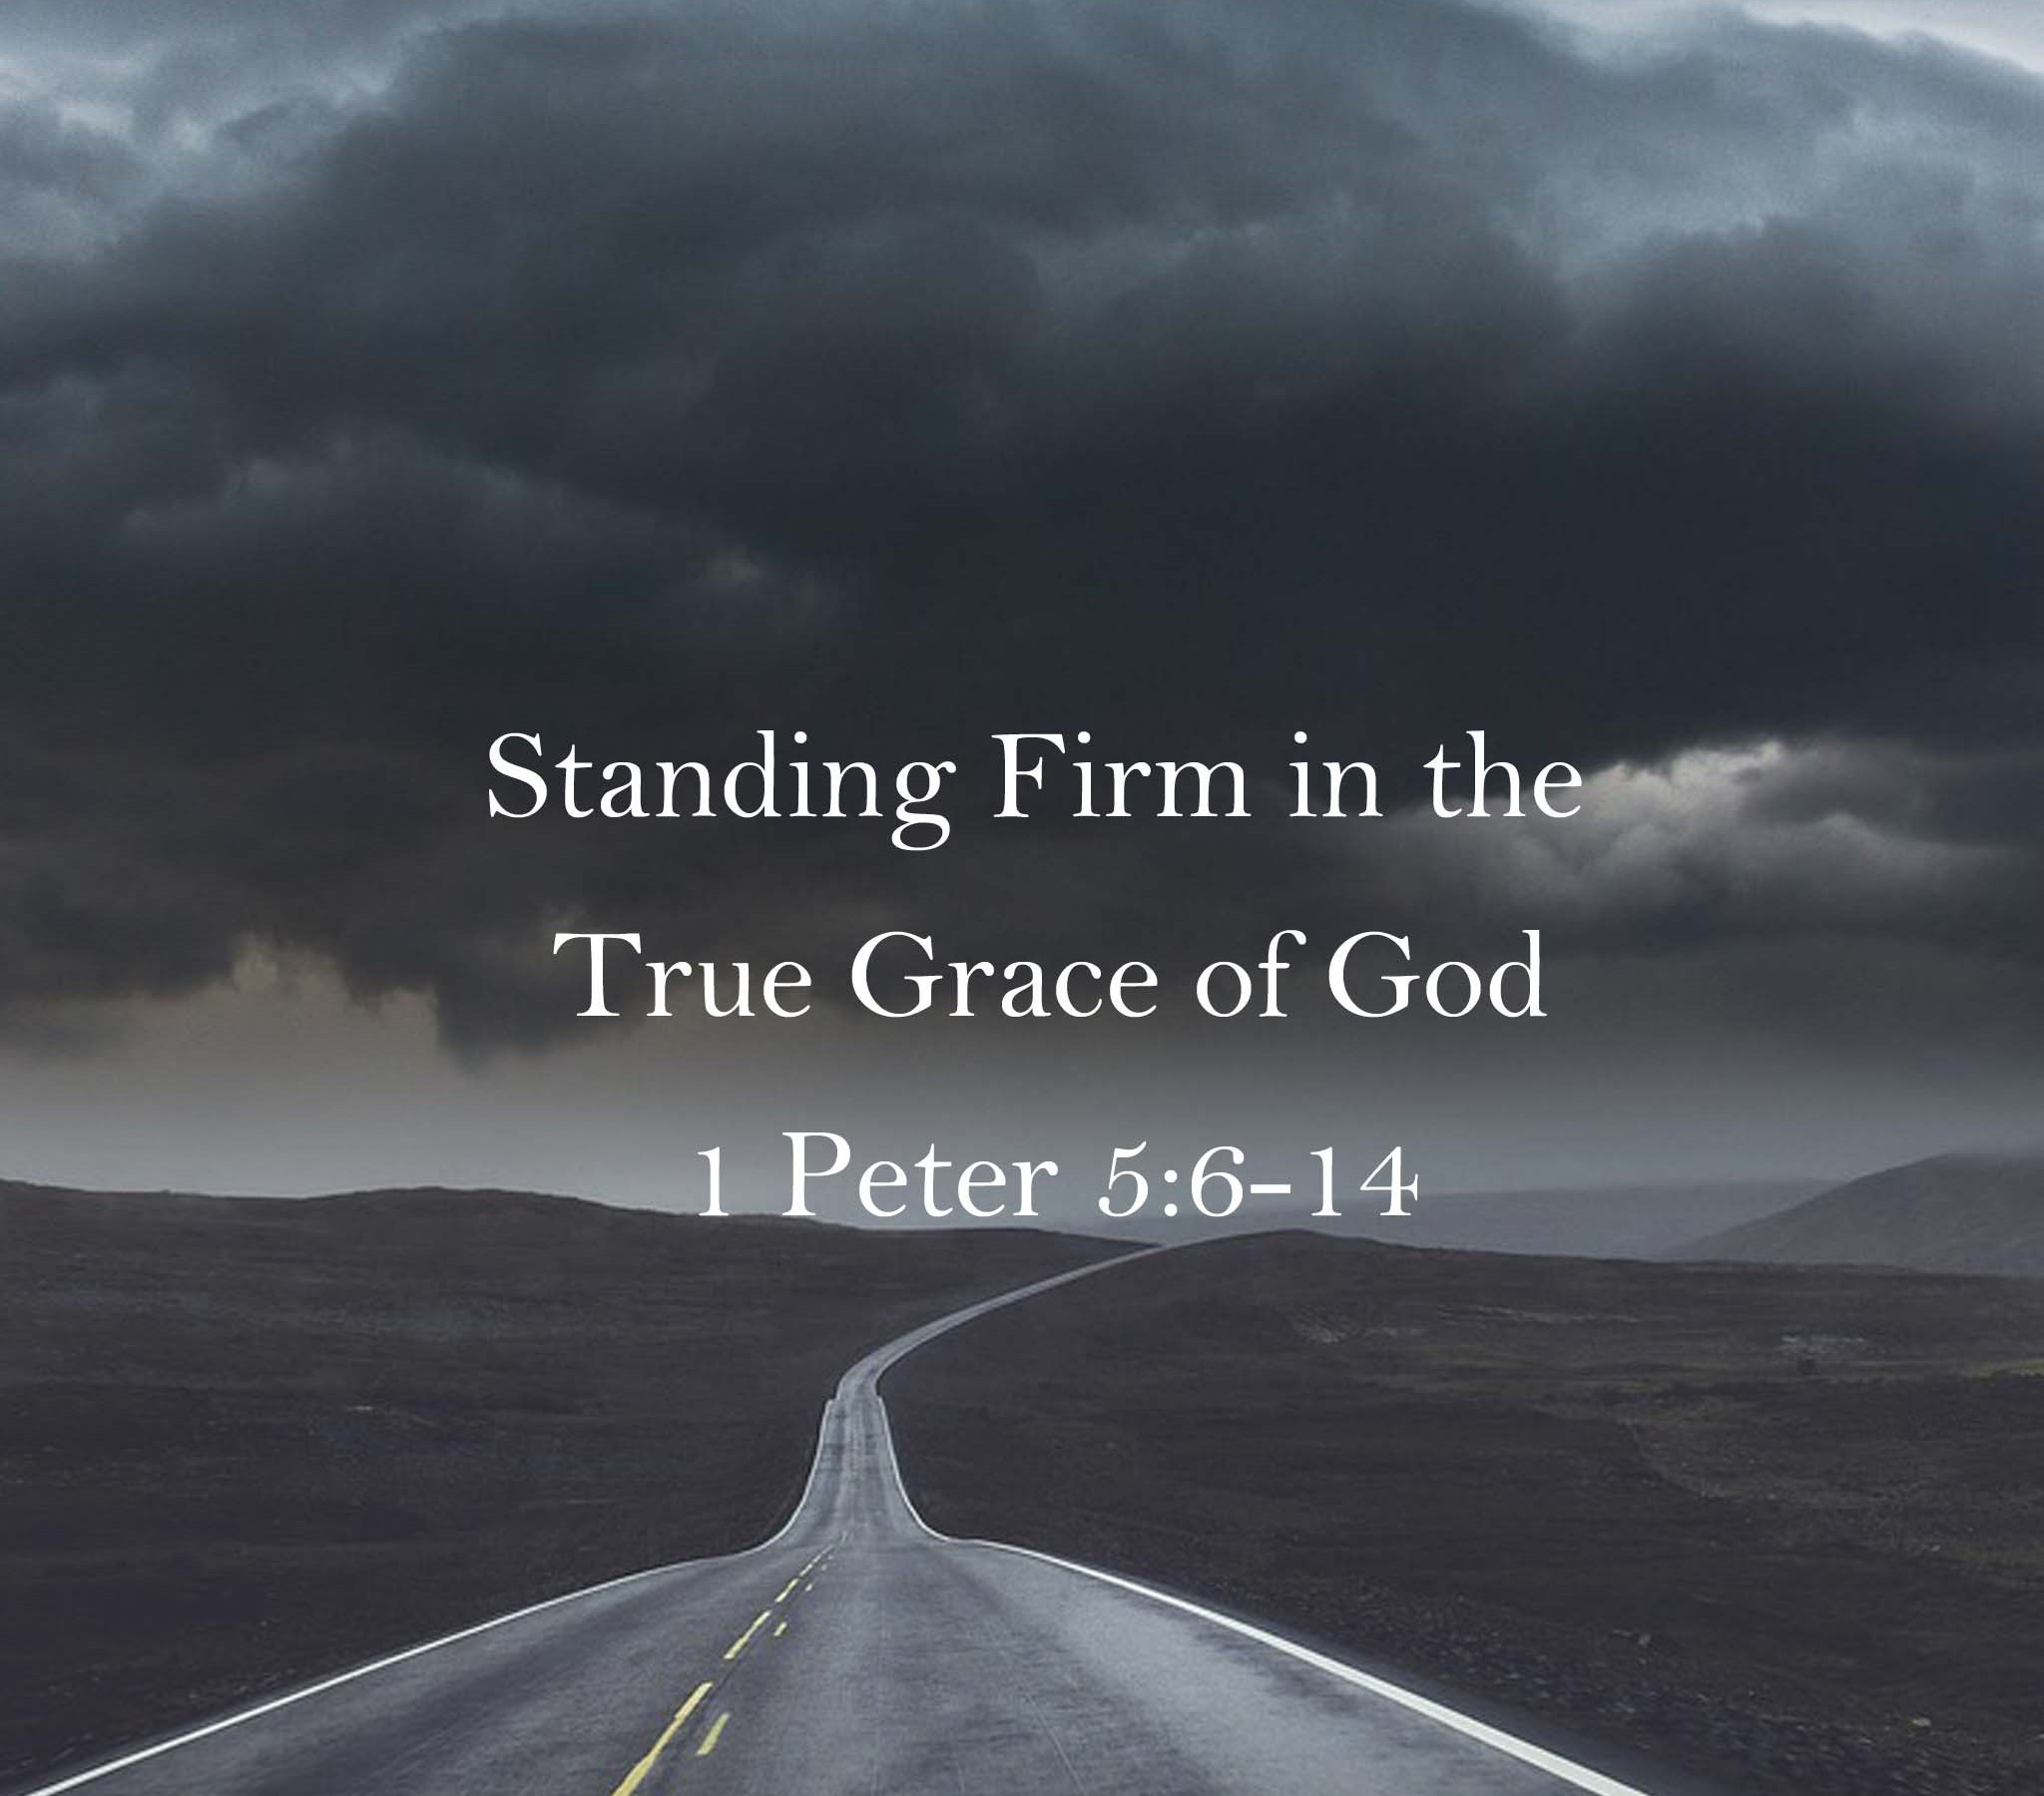 Sermon: Standing Firm in the True Grace of God 1 Peter 5:6-14